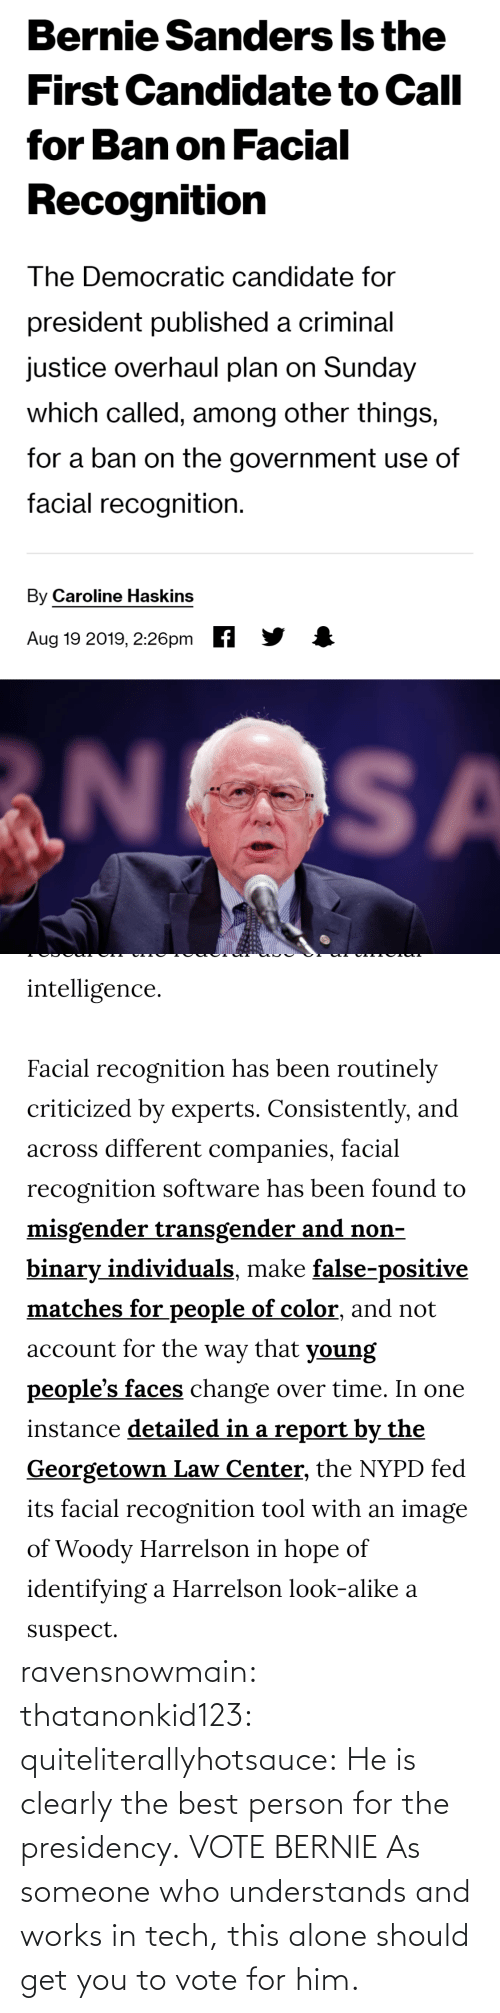 Being Alone, Tumblr, and Best: ravensnowmain: thatanonkid123:  quiteliterallyhotsauce:   He is clearly the best person for the presidency.     VOTE BERNIE  As someone who understands and works in tech, this alone should get you to vote for him.